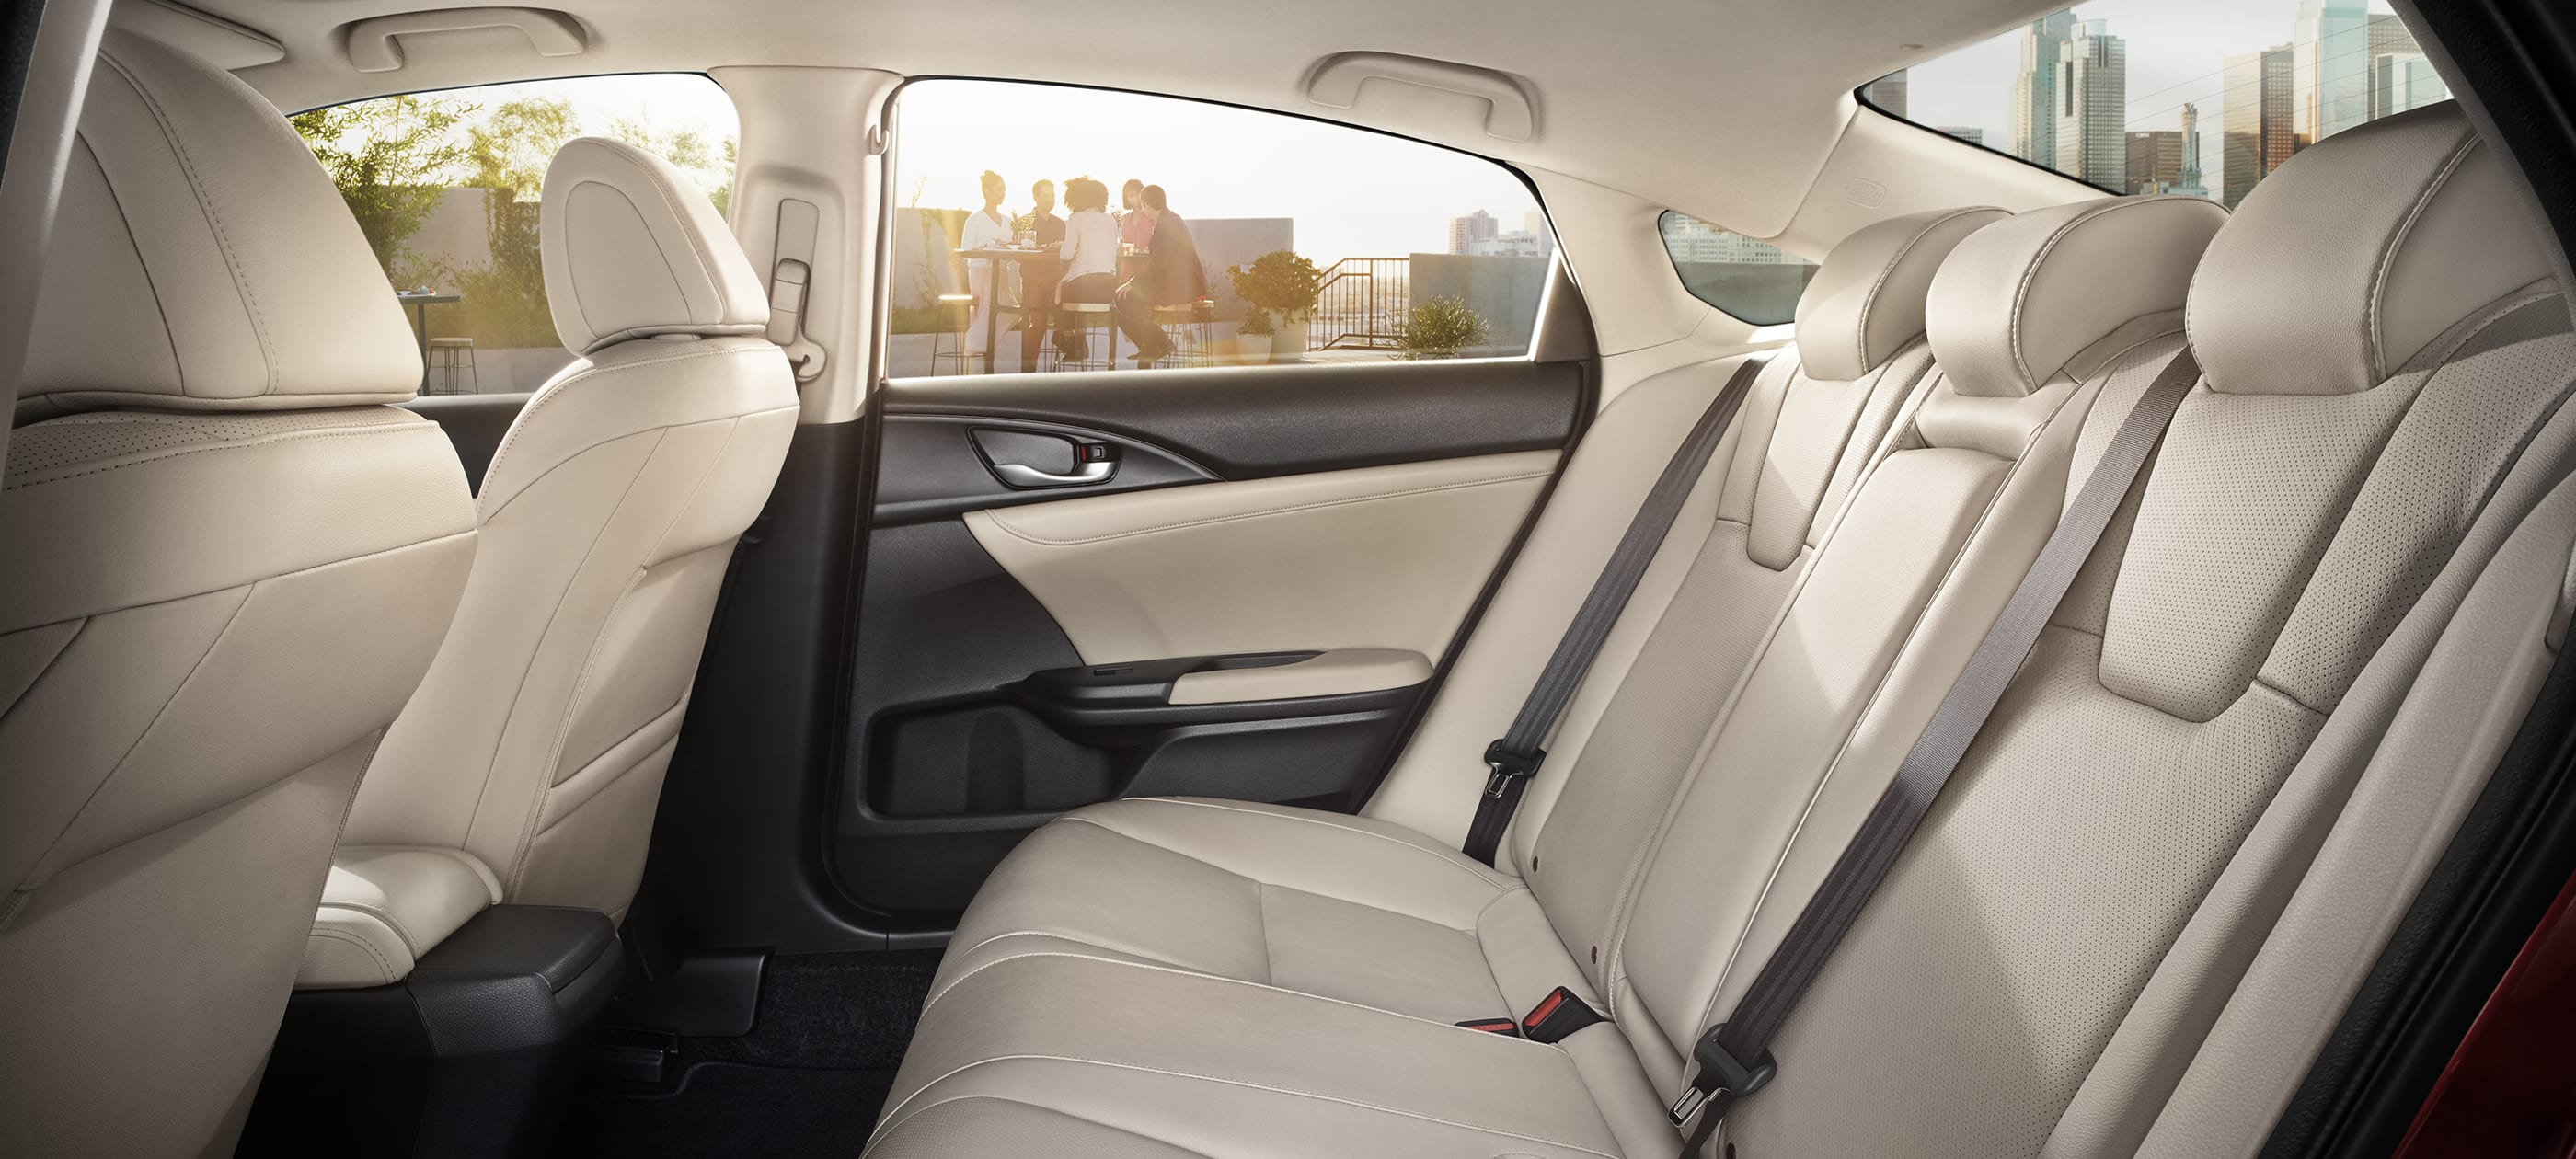 Interior driver-side profile view of rear seats in 2019 Honda Insight EX with beige interior.